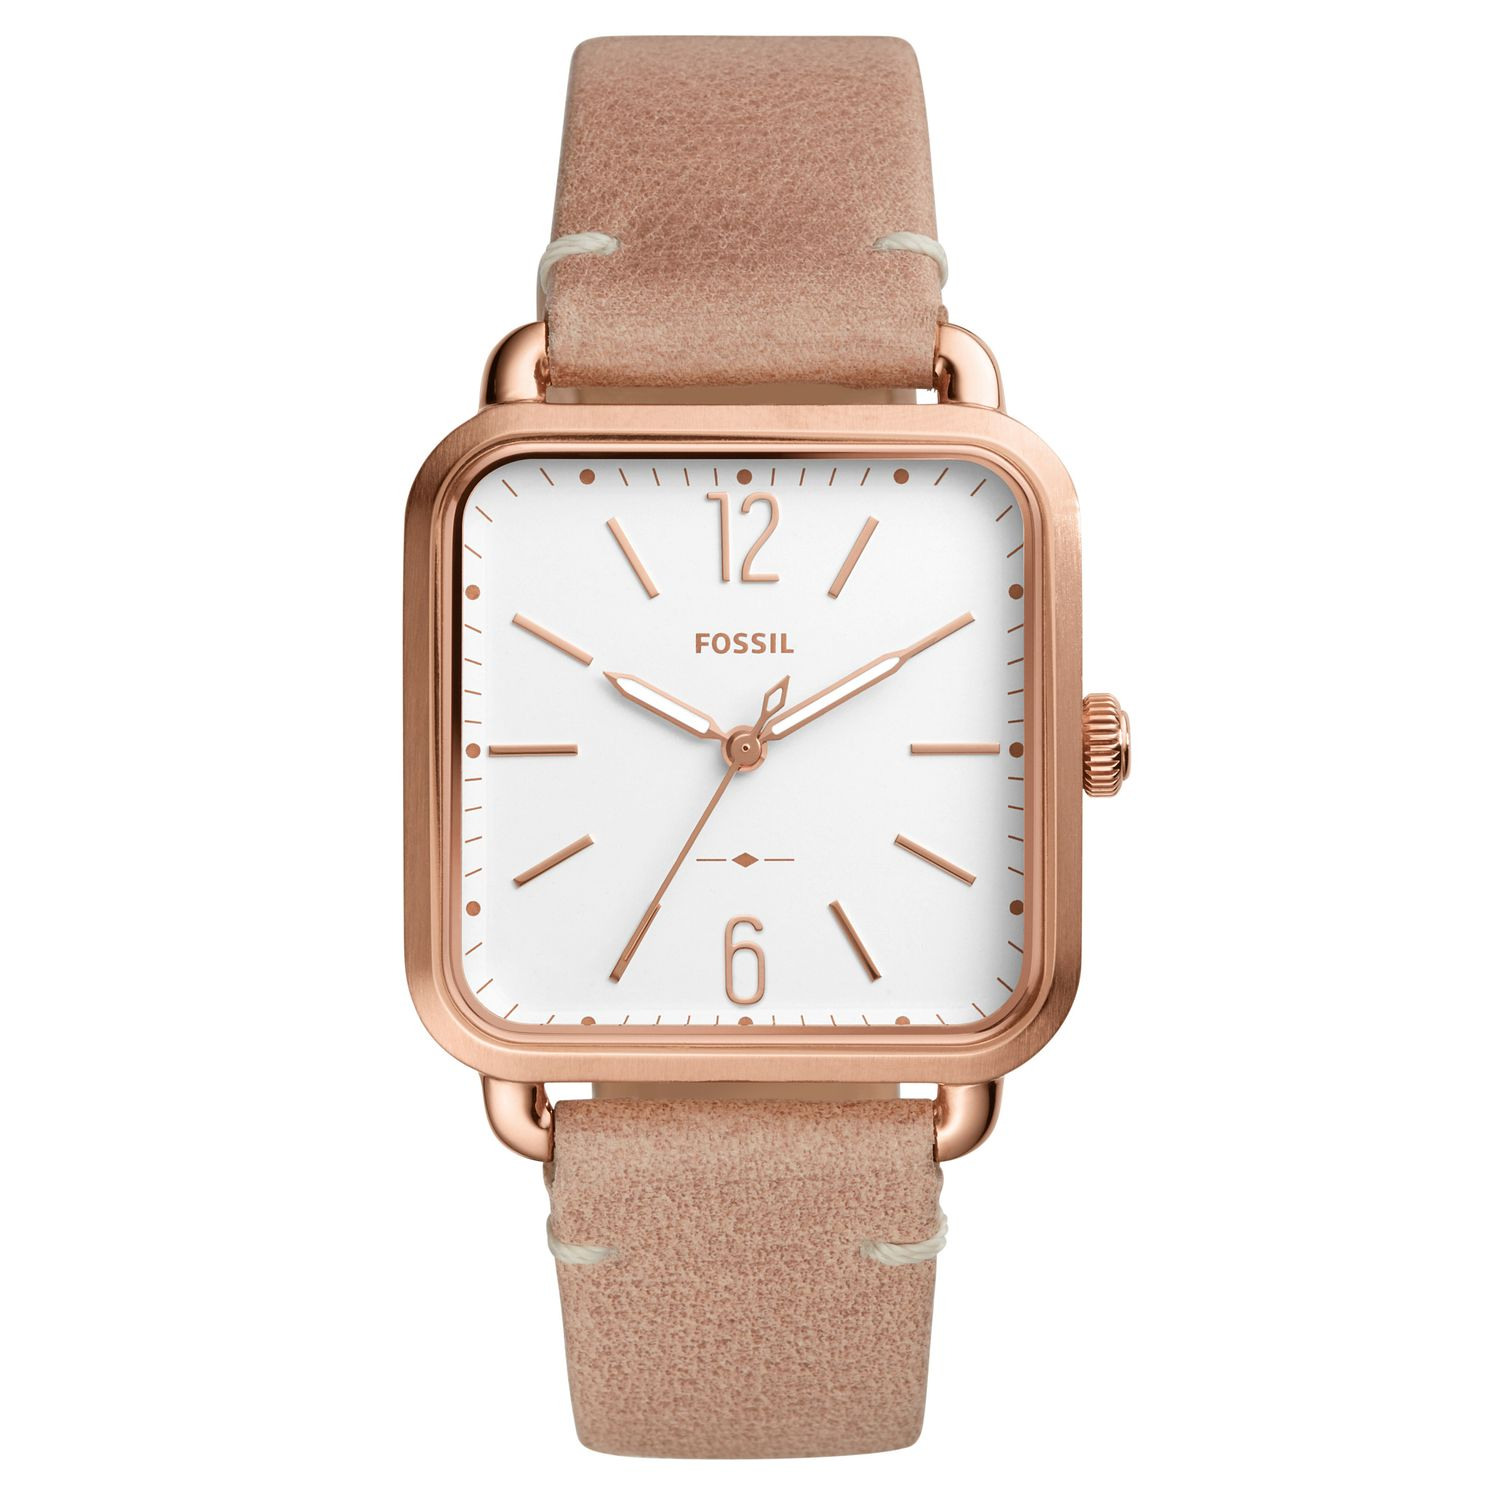 Fossil Micah Ladies' Rose Gold Tone Square Strap Watch - Product number 8139474